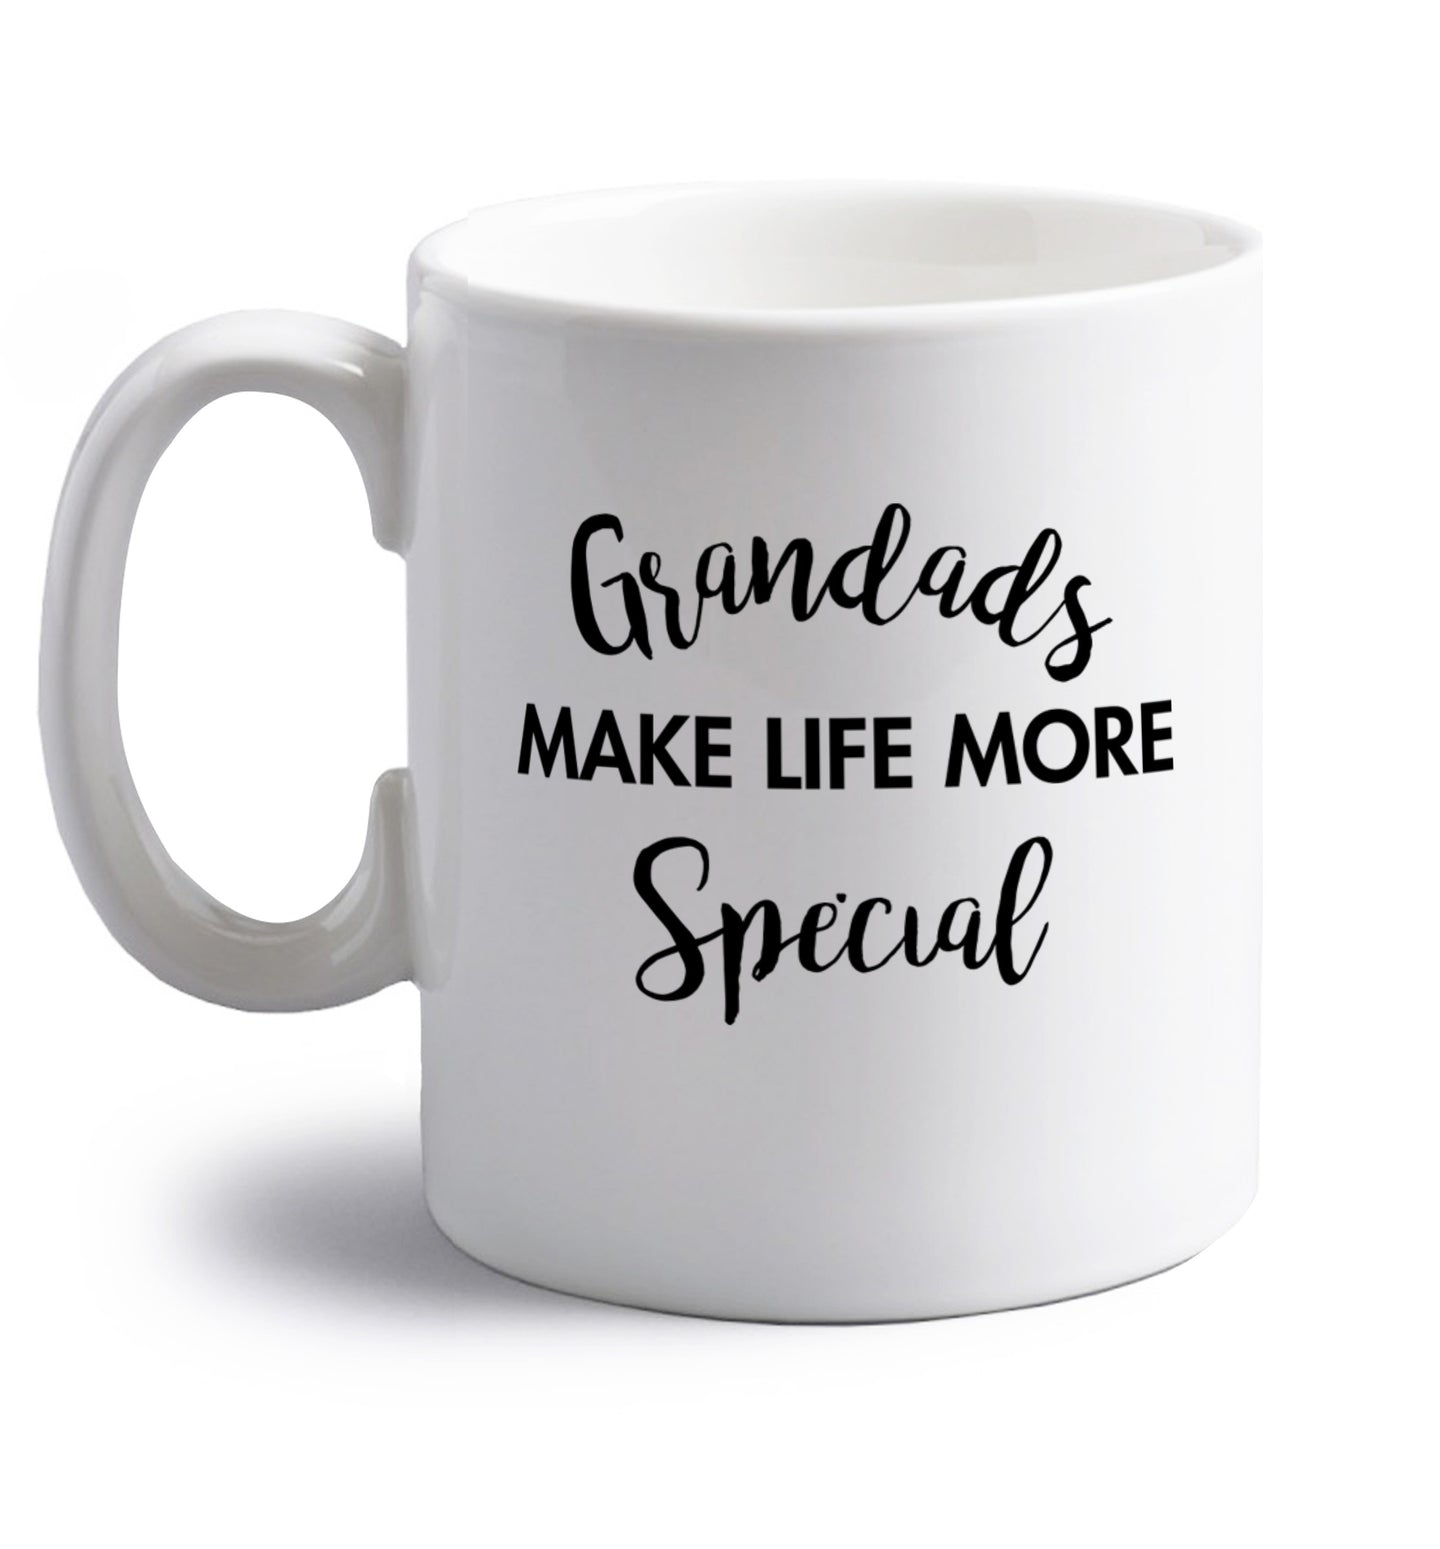 Grandads make life more special right handed white ceramic mug